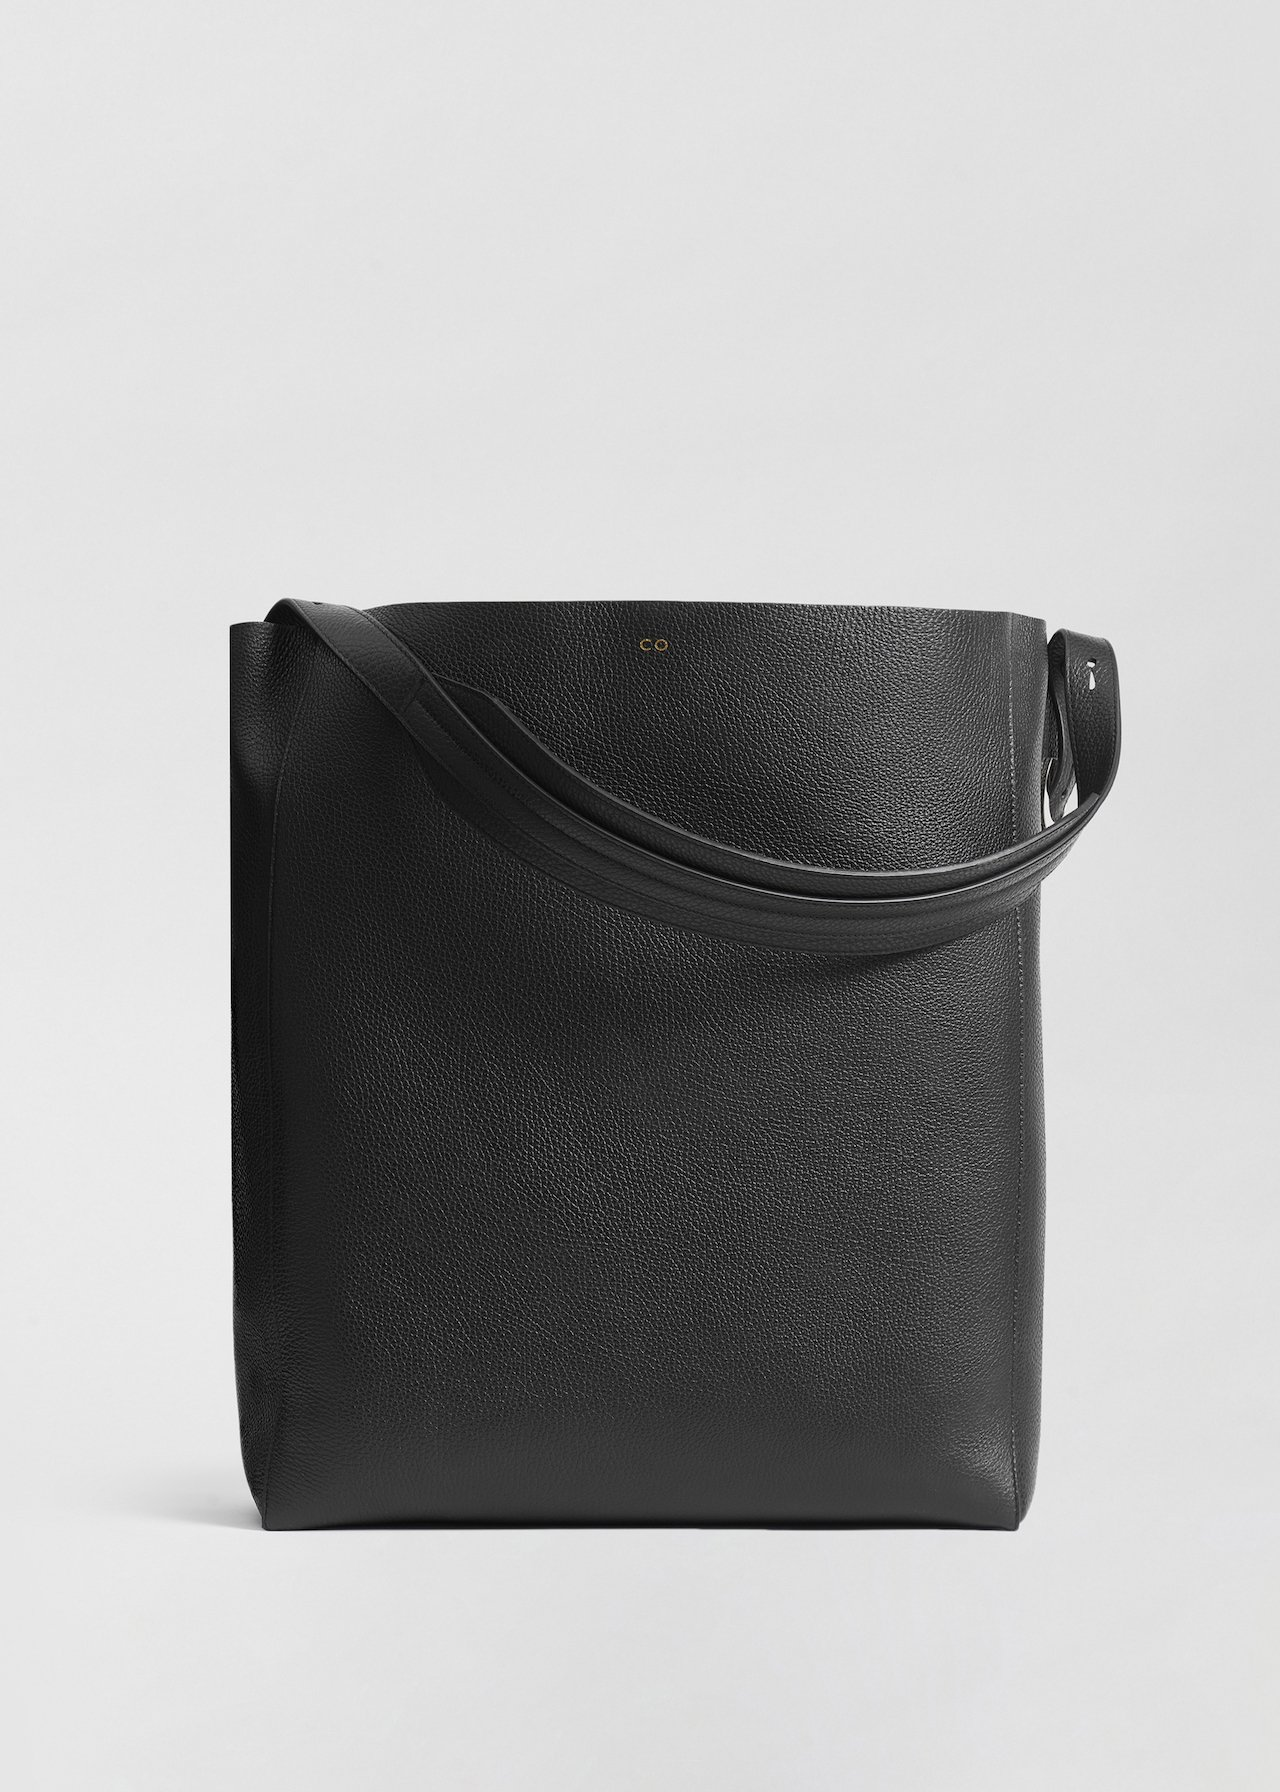 Classic Tote in Pebbled Leather - Black - CO